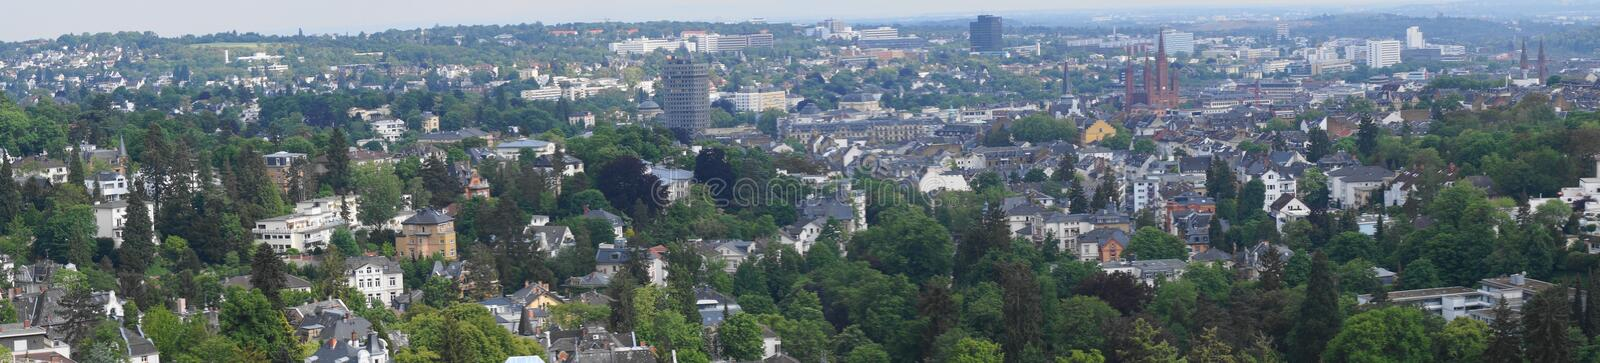 Distant view on Wiesbaden the capitol city of Hessen in Germany stock images